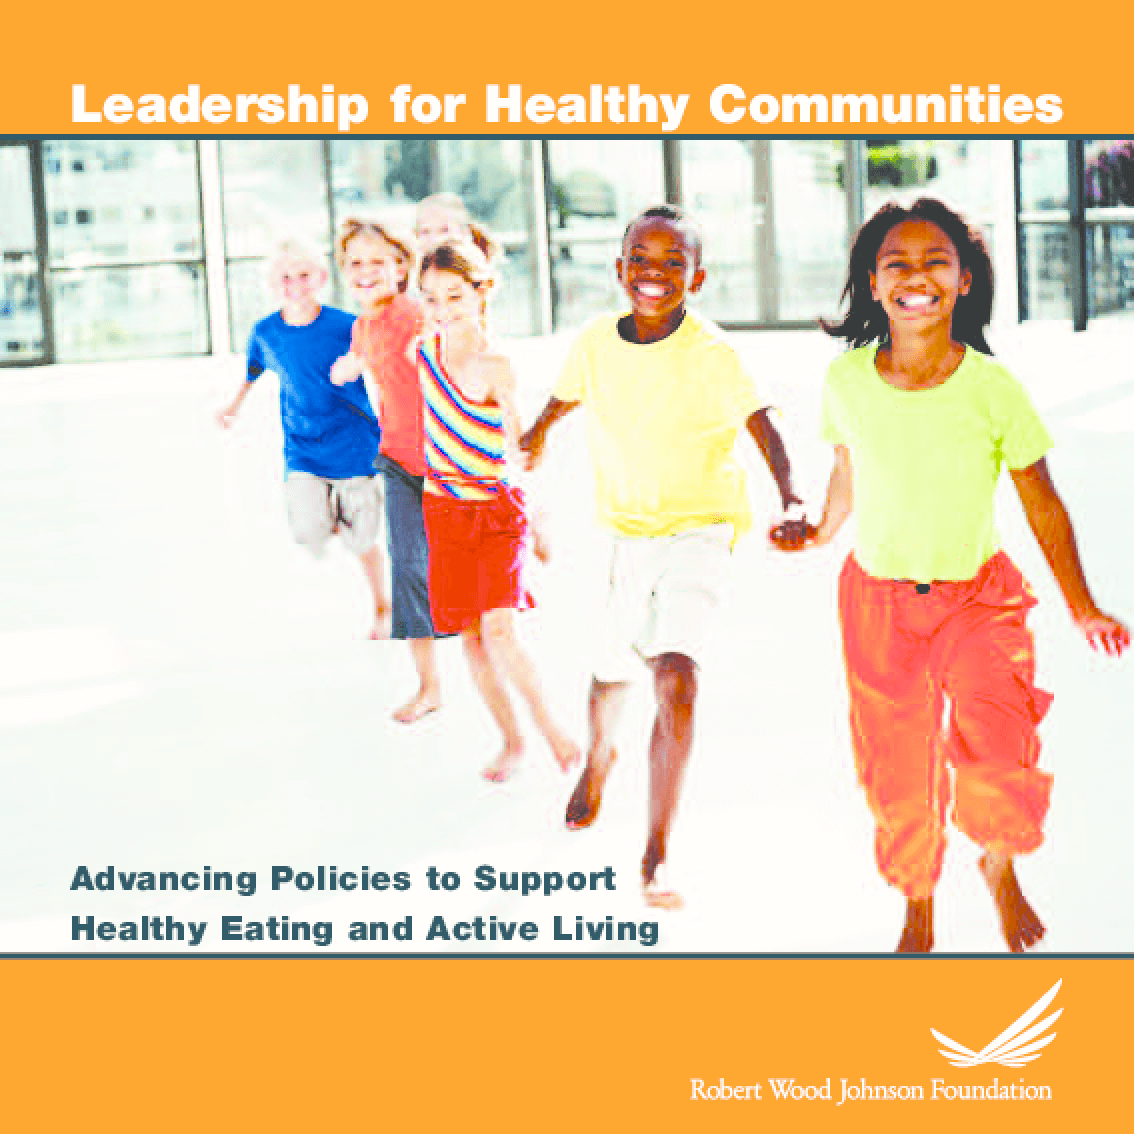 Advancing Policies to Support Healthy Eating and Active Living